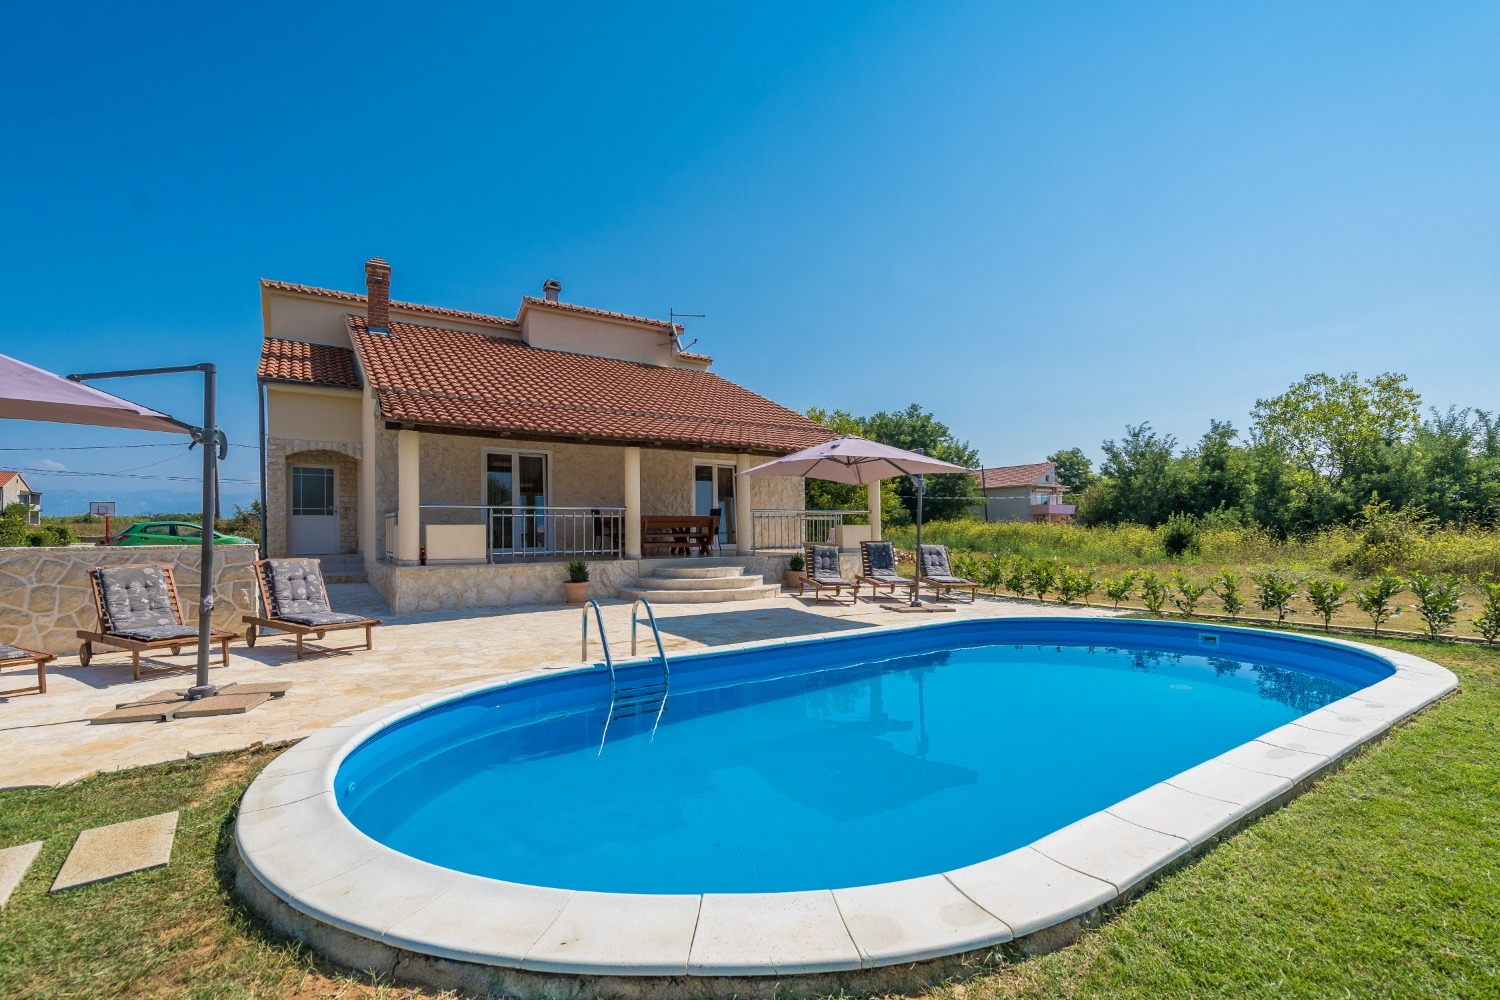 Holiday Homes, Privlaka, Nin and surroundings - Holiday houses, villas  Oasis Village Villa - with pool :